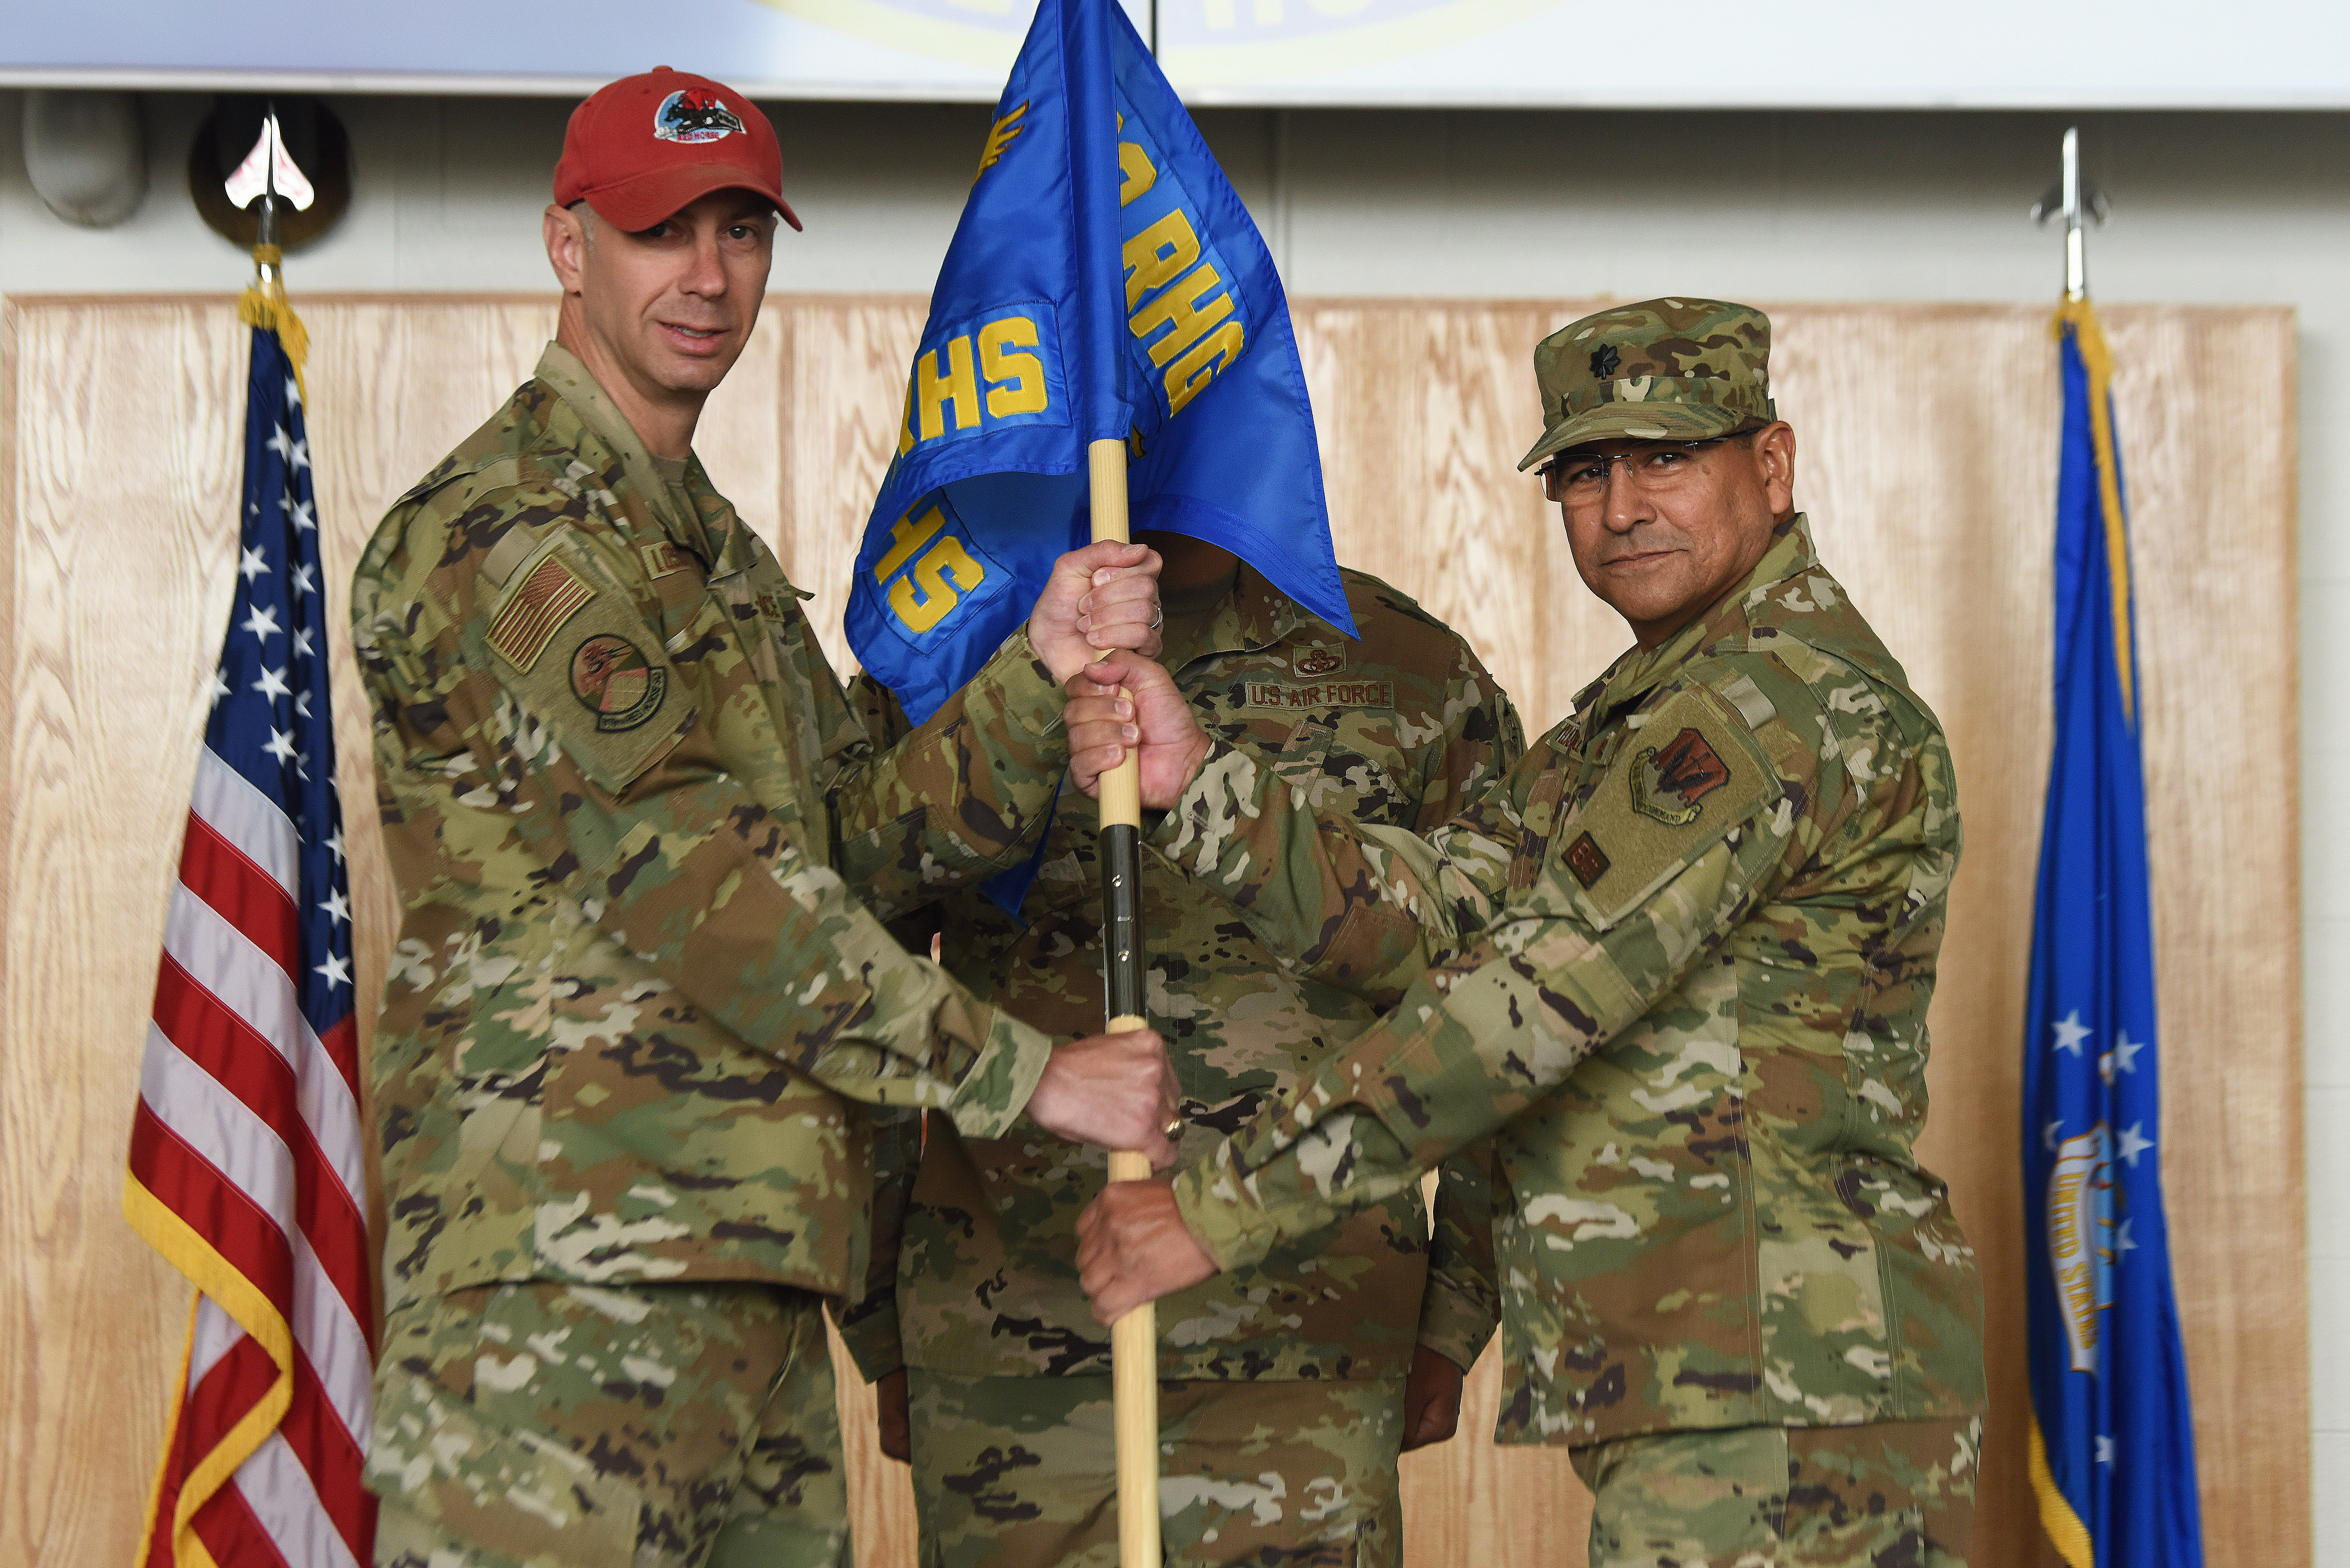 819th RED HORSE Squadron Change of Command Ceremony